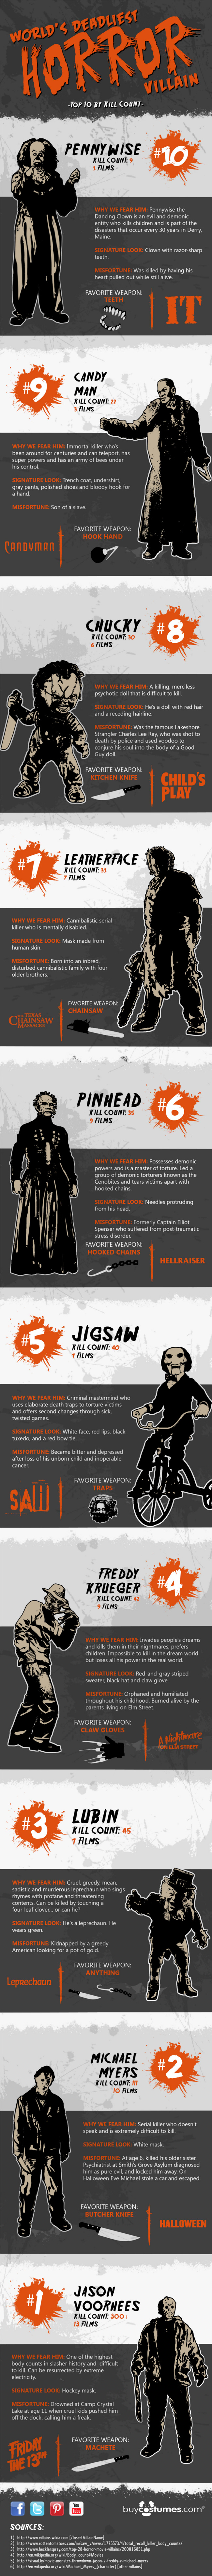 World's Deadliest Horror Villain presented by BuyCostumes